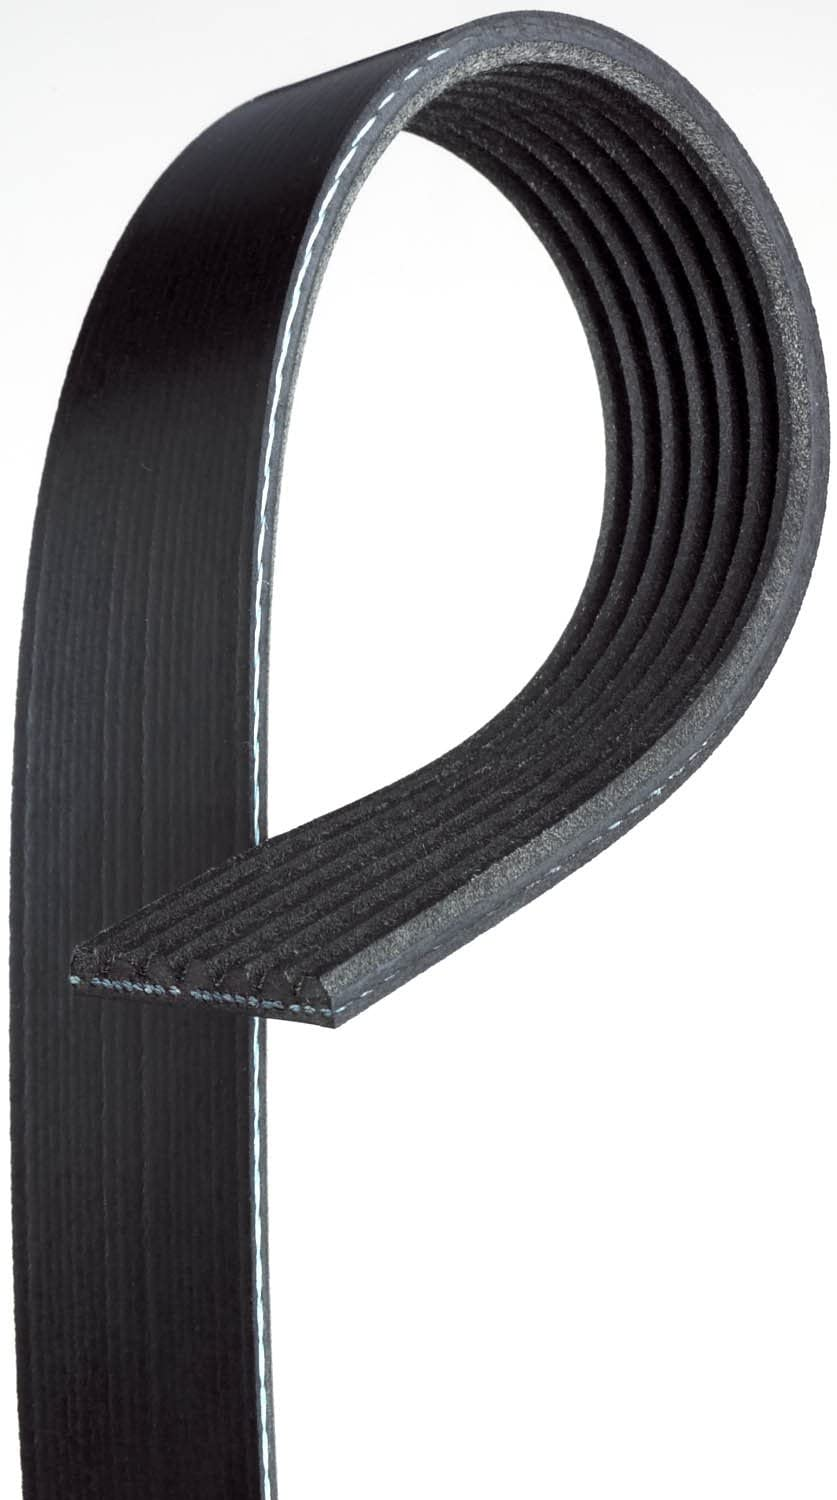 ACDelco 7K846 Professional V-Ribbed Serpentine Belt